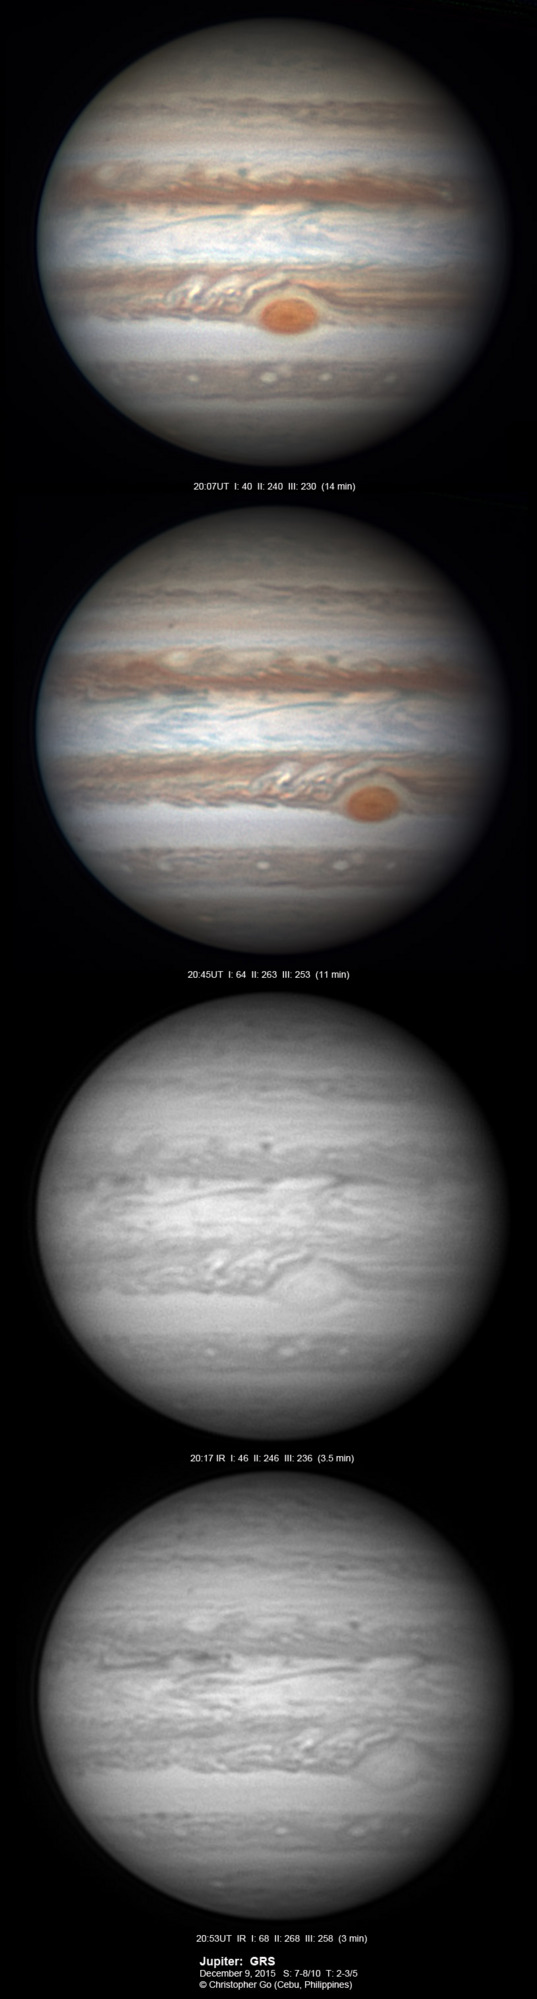 In the wake of the Great Red Spot